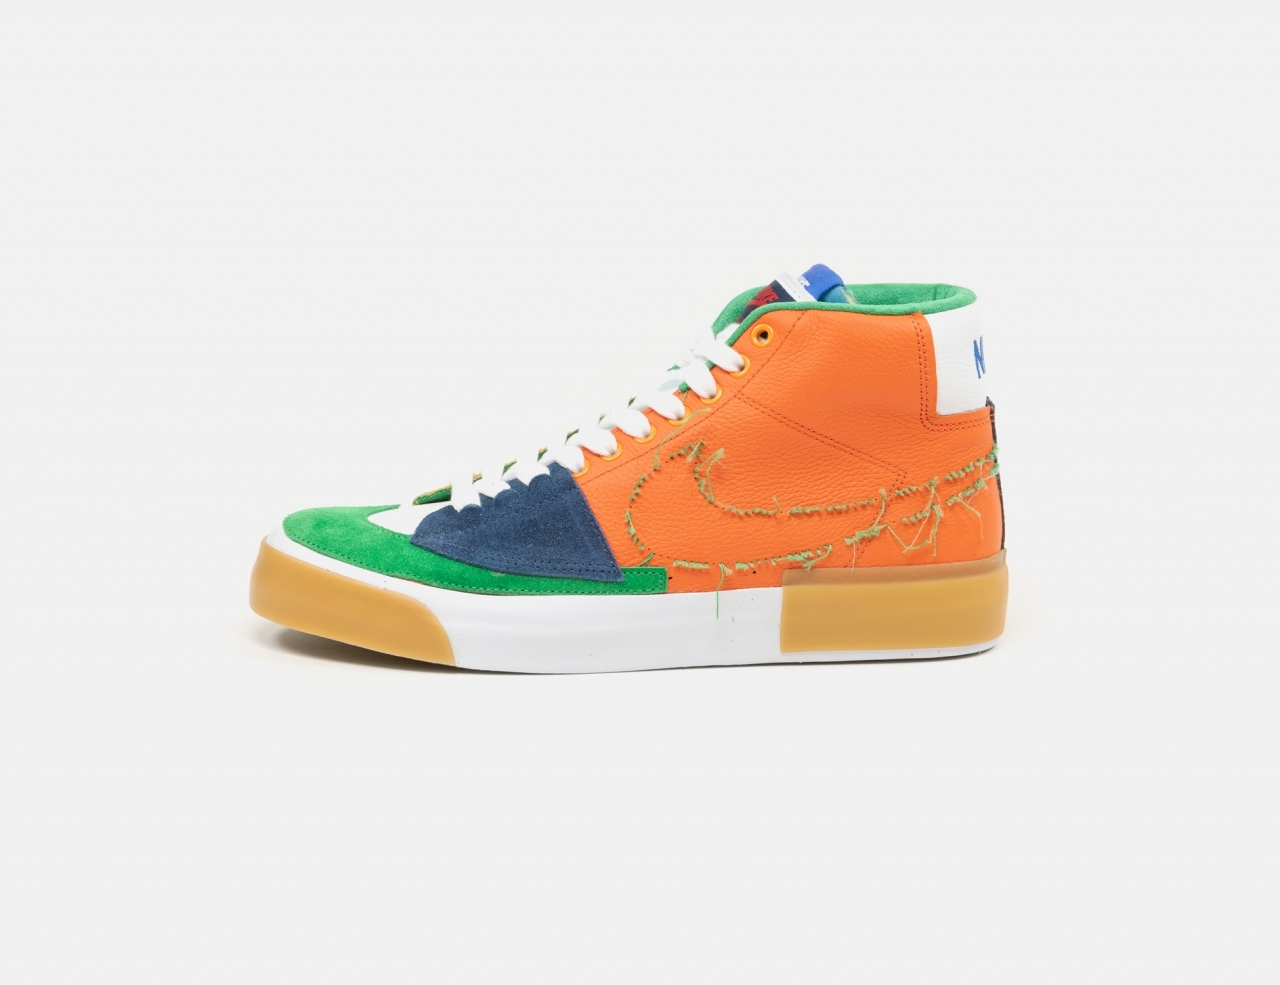 Nike SB Zoom Blazer Mid Edge Sneaker - Safety Orange / Lucky Green